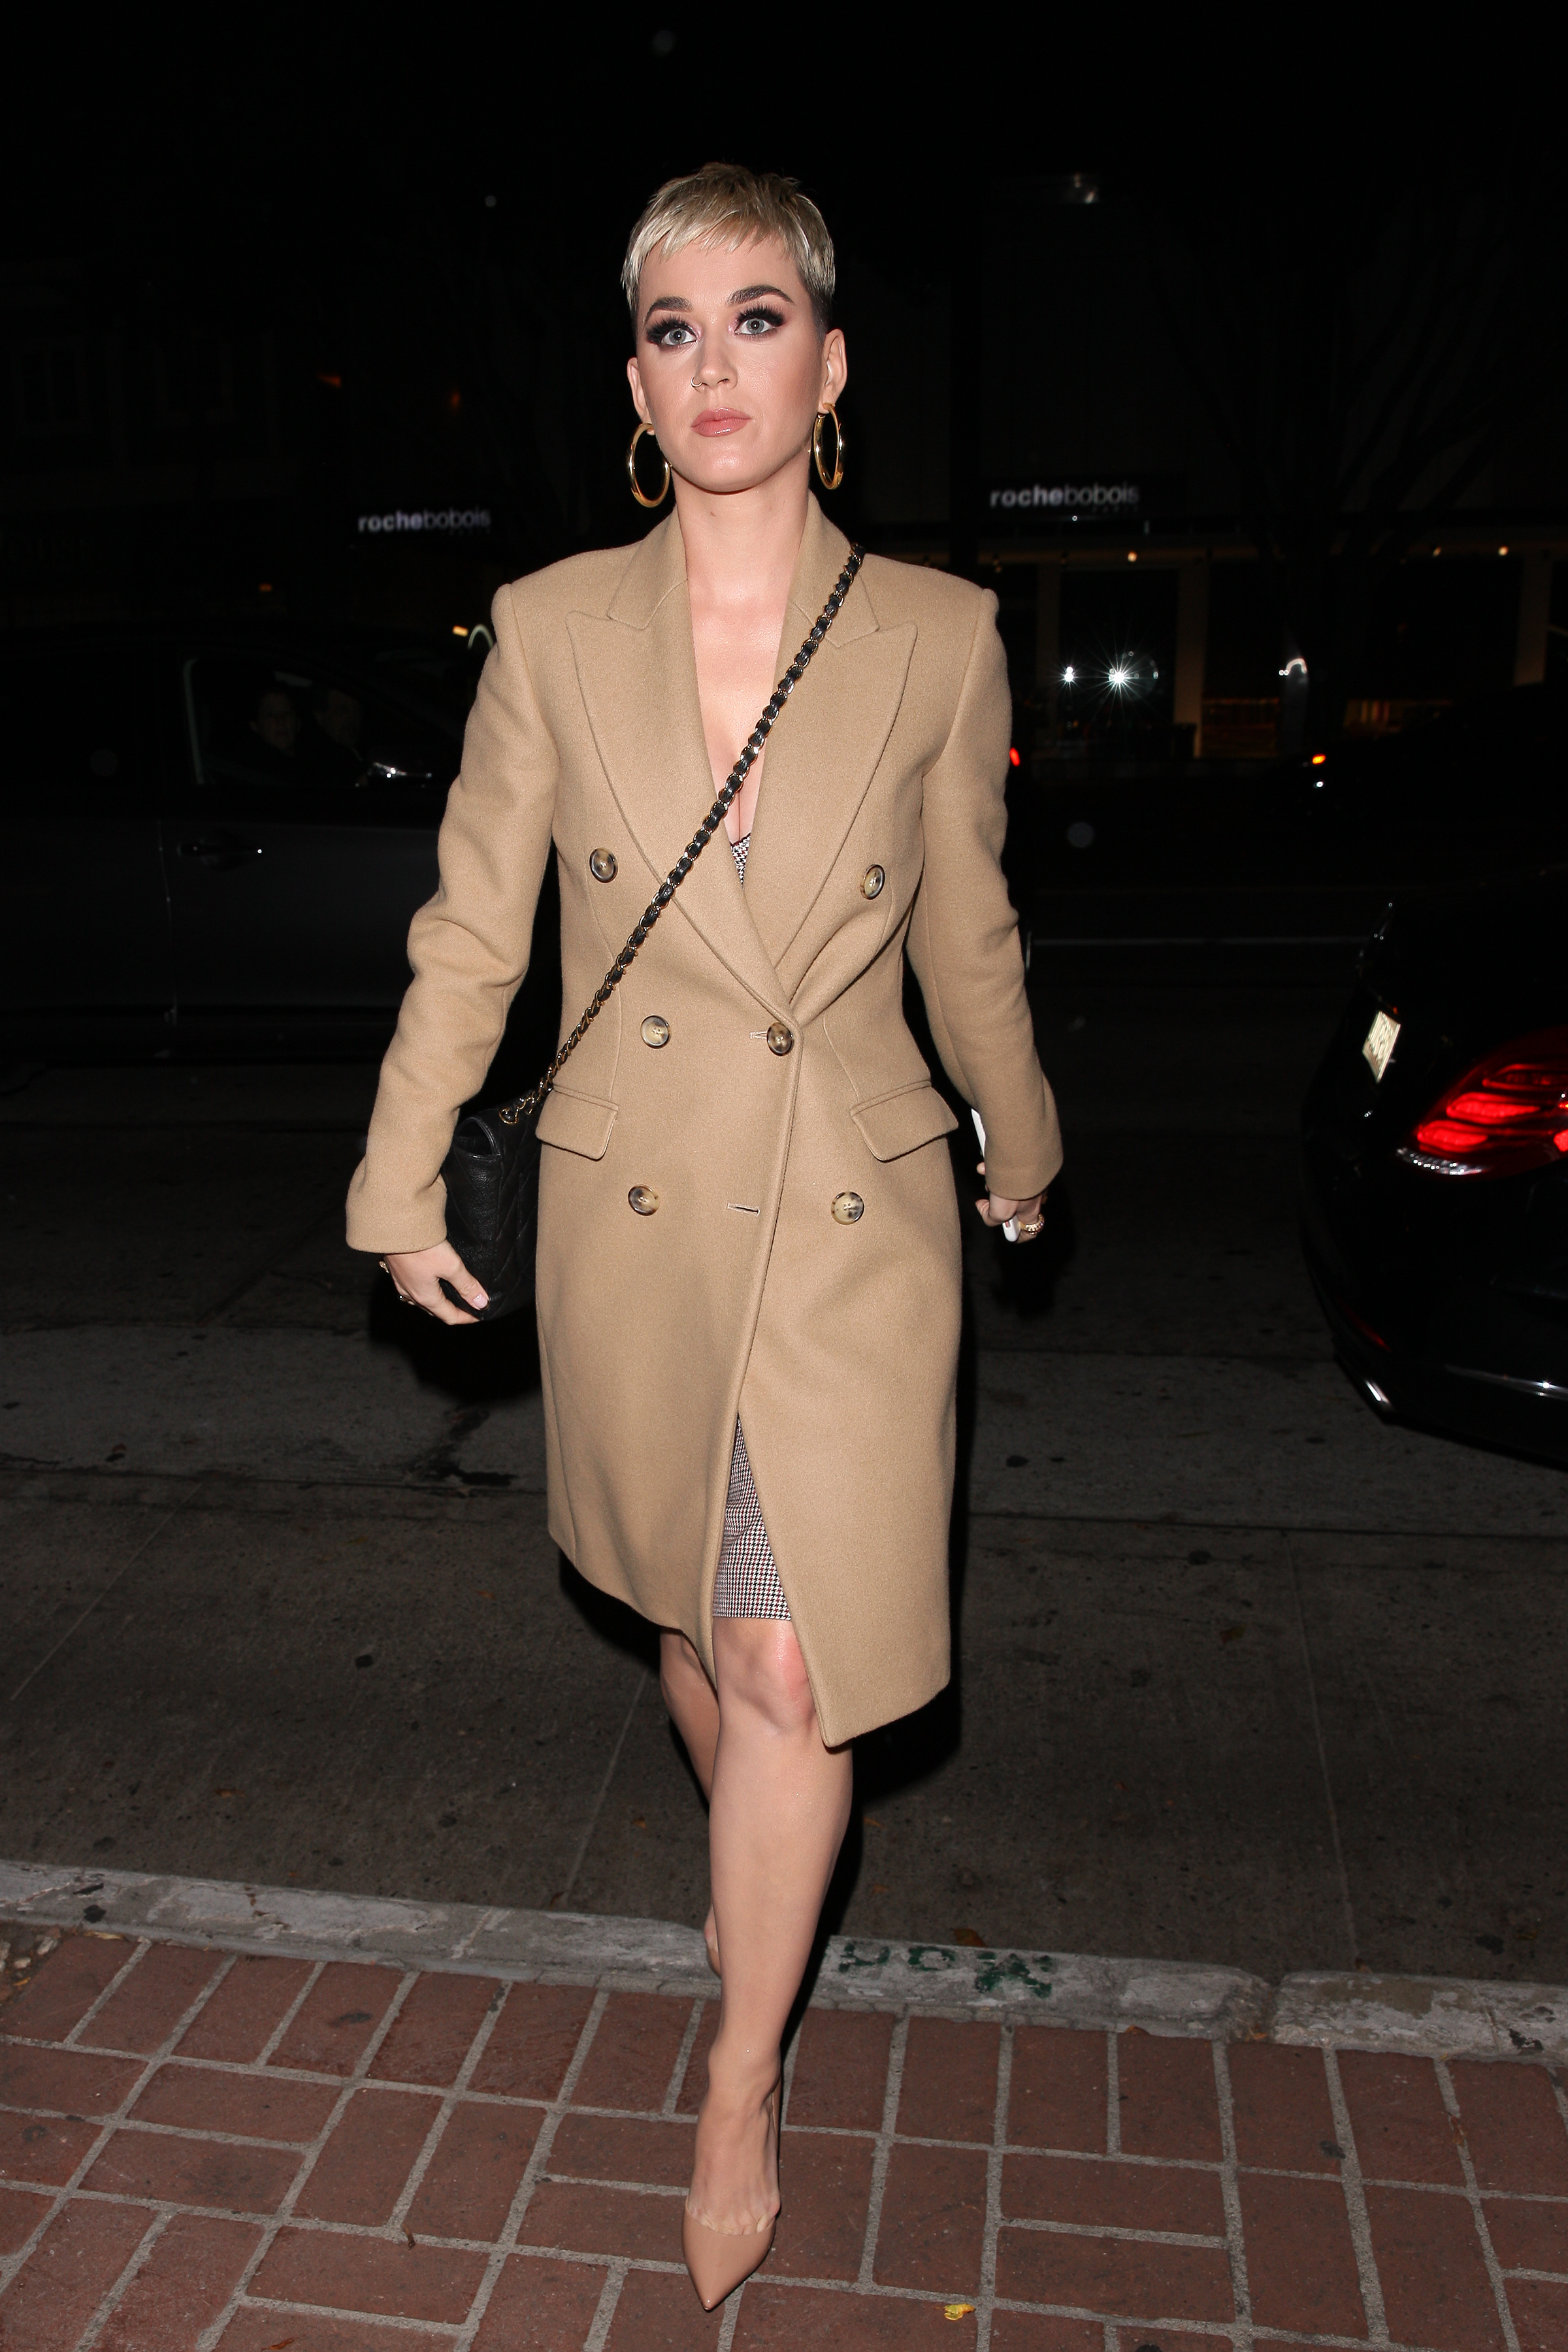 Katy Perry arriving at Madeo Restaurant to meet up